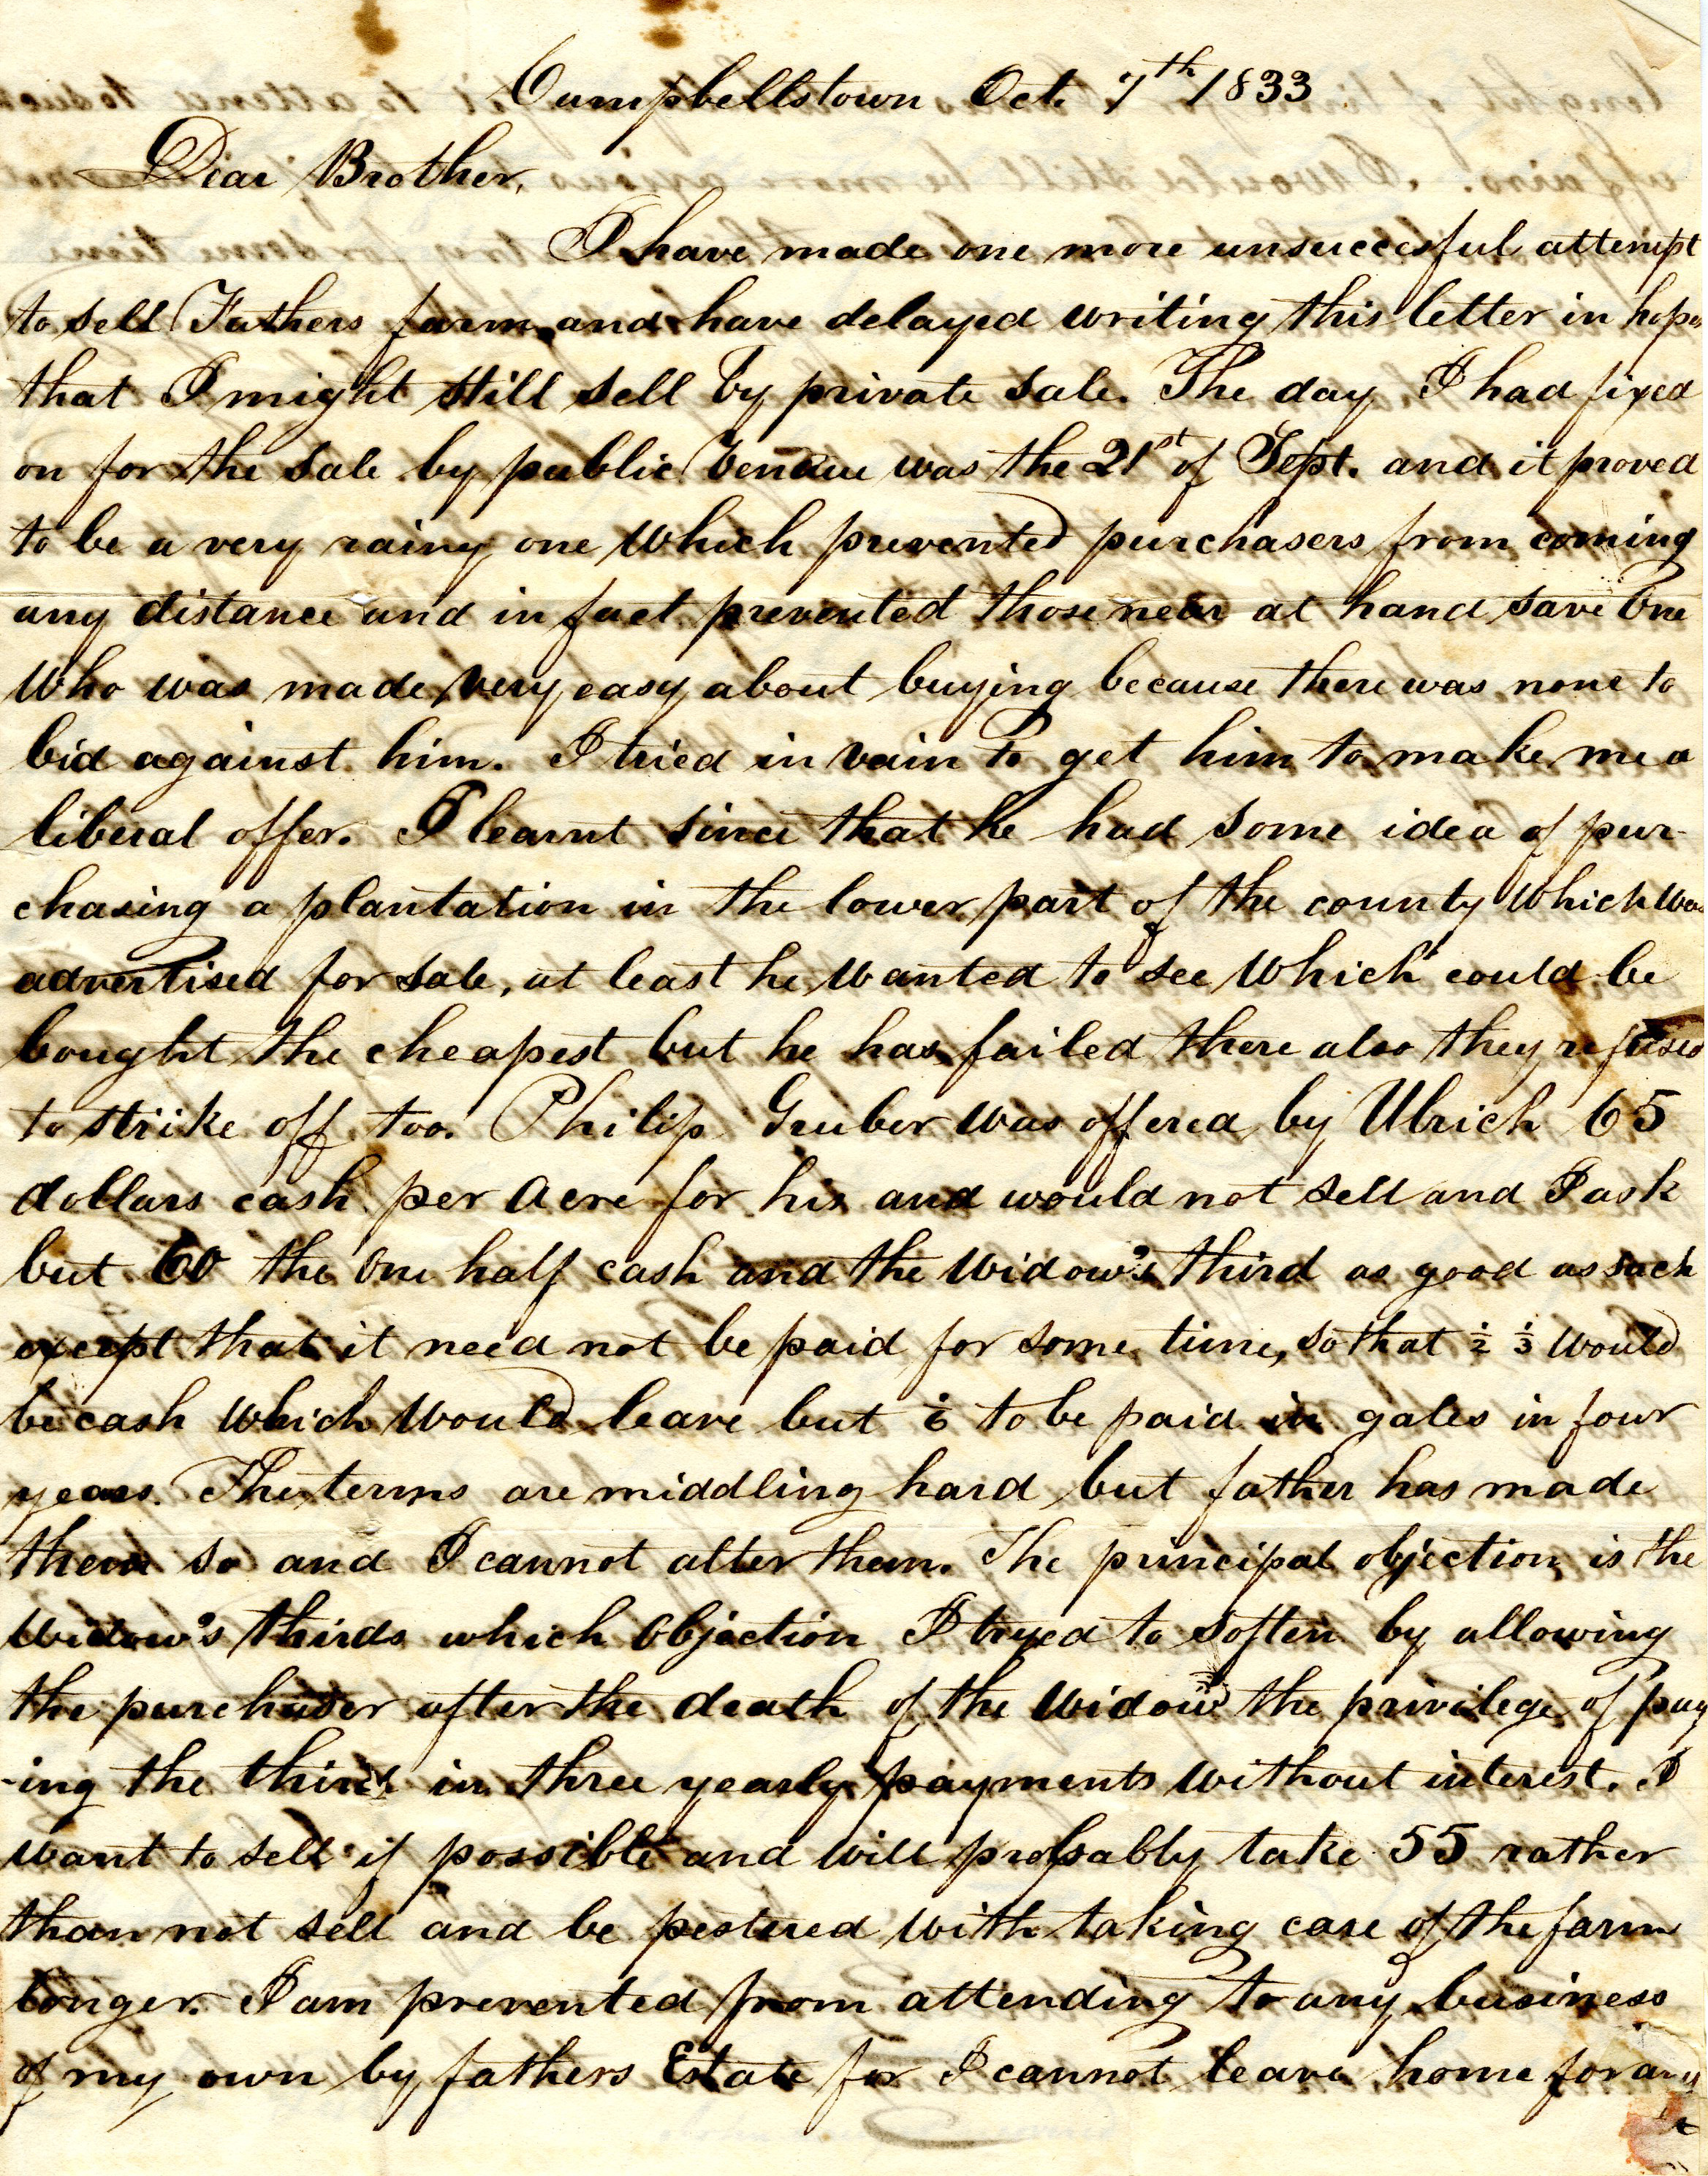 Letter From William Geddes to John Geddes, October 7, 1833 image